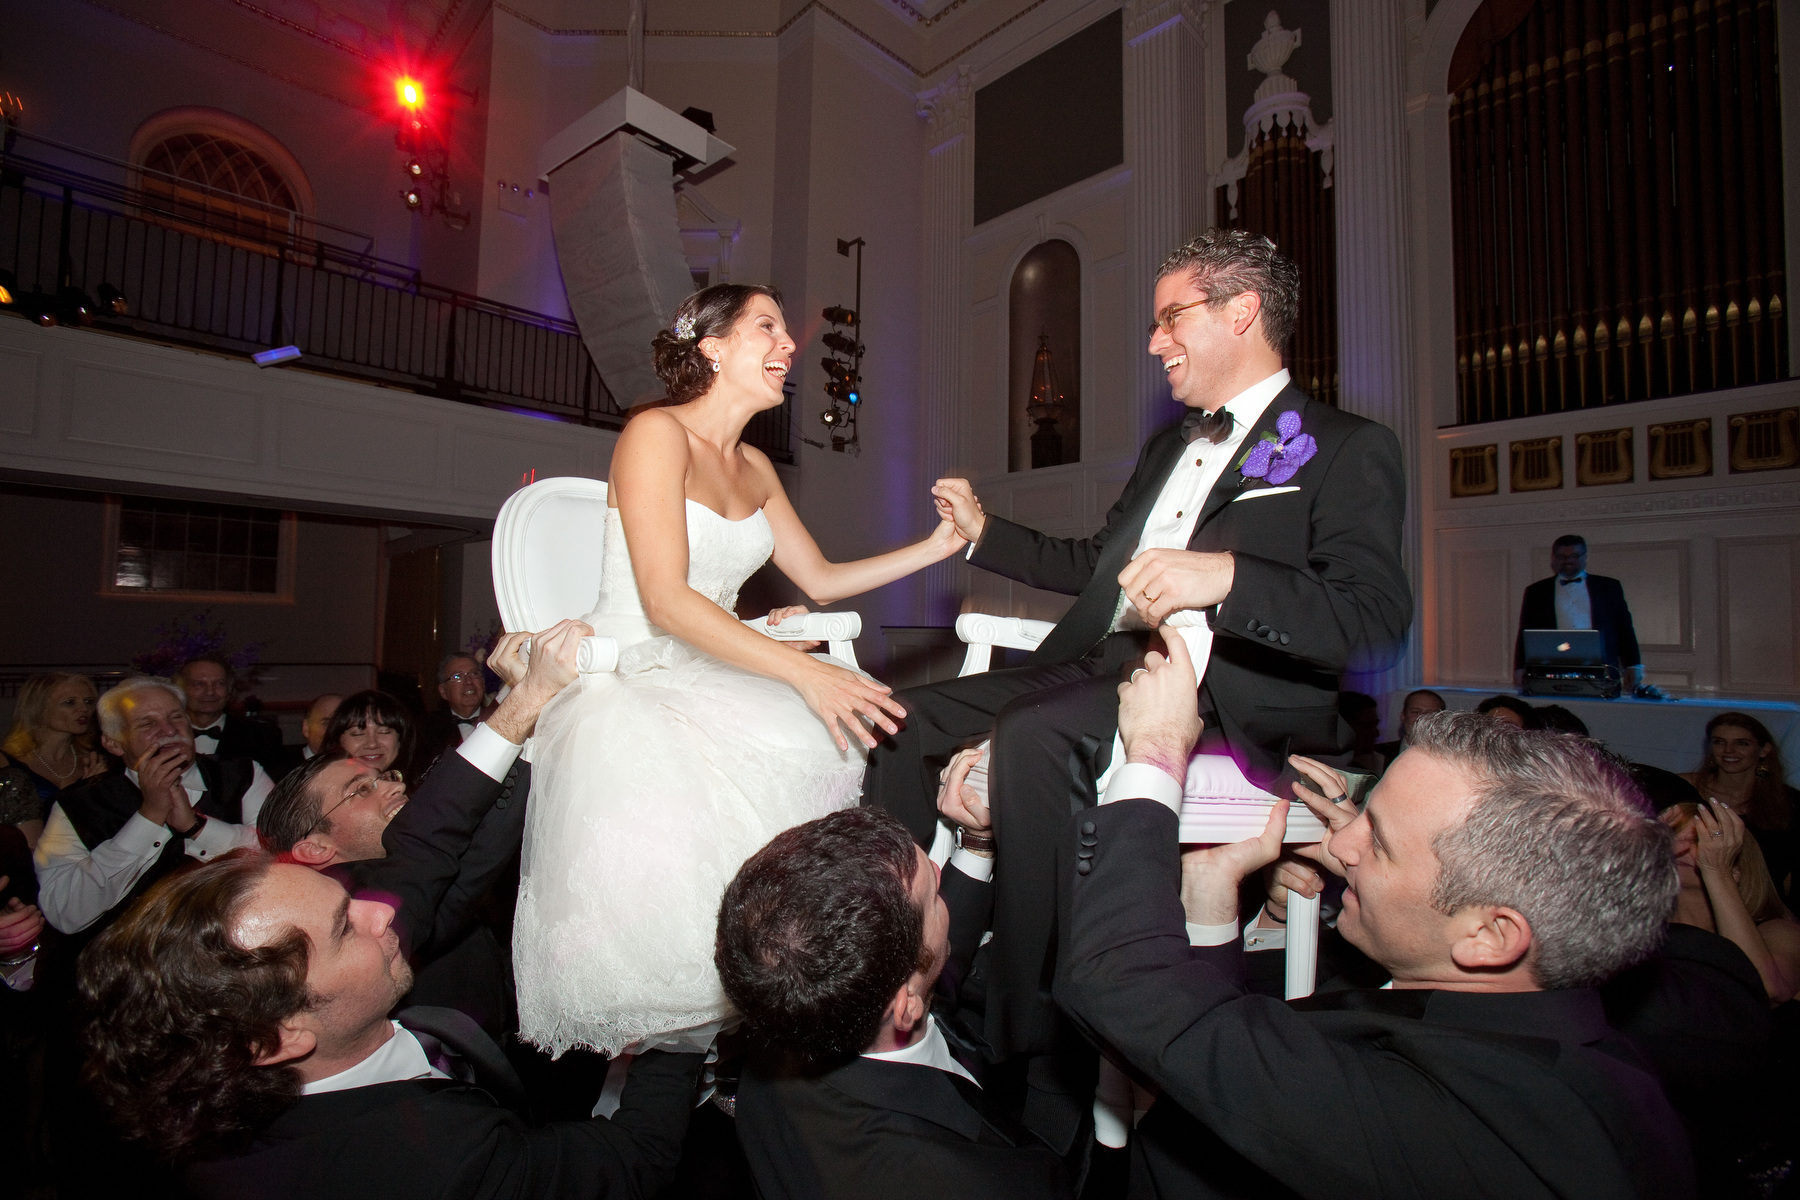 A Bride and groom dance the hora at 583 Park Ave in New York, NY